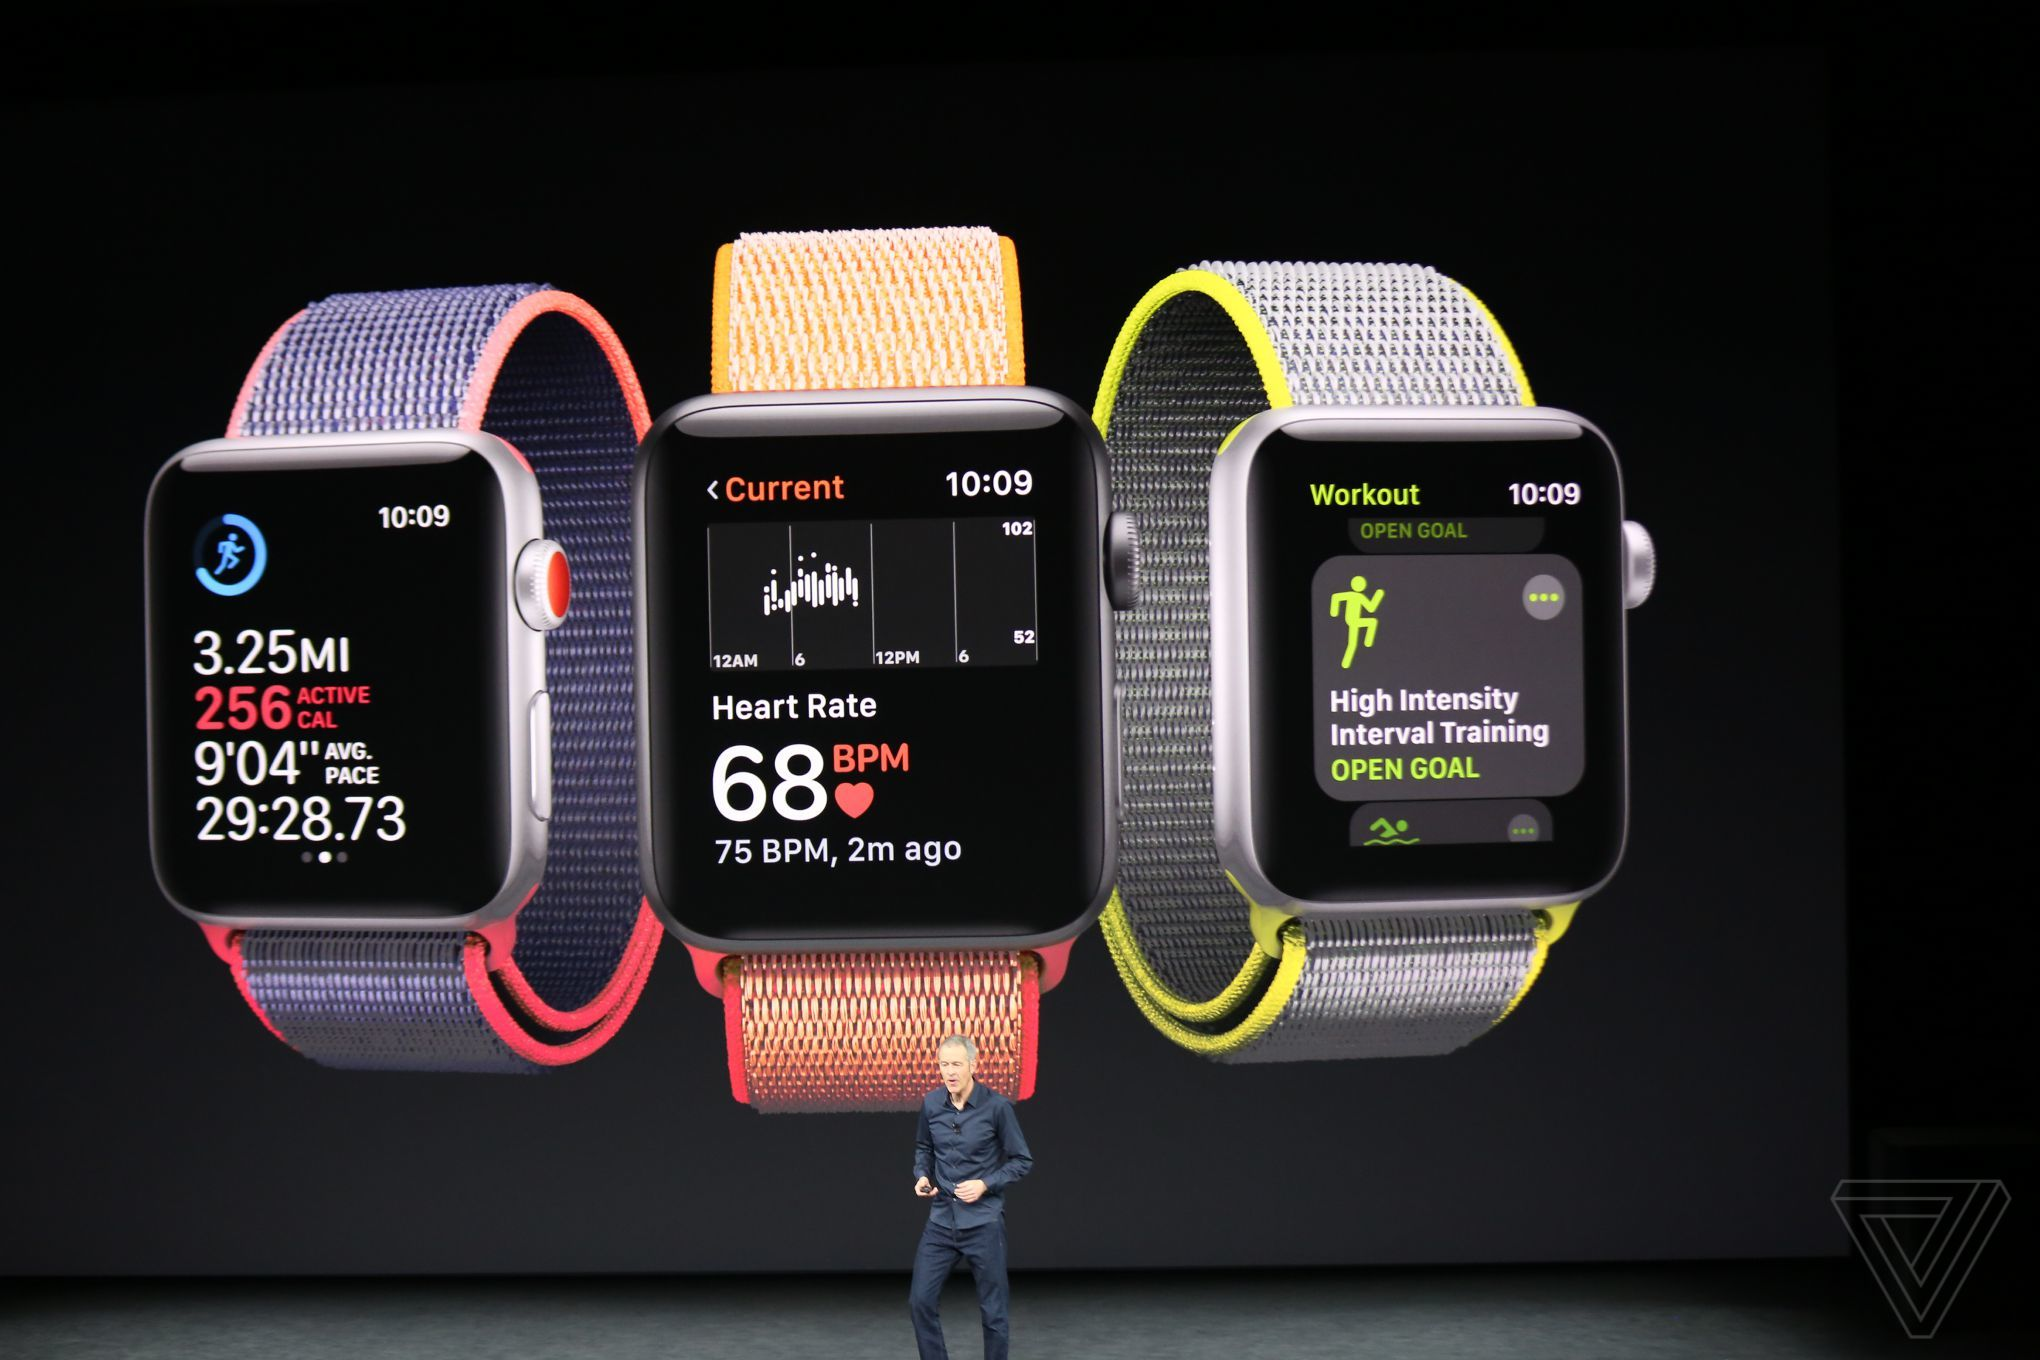 Apple Watch Series 3 получили LTE-модуль